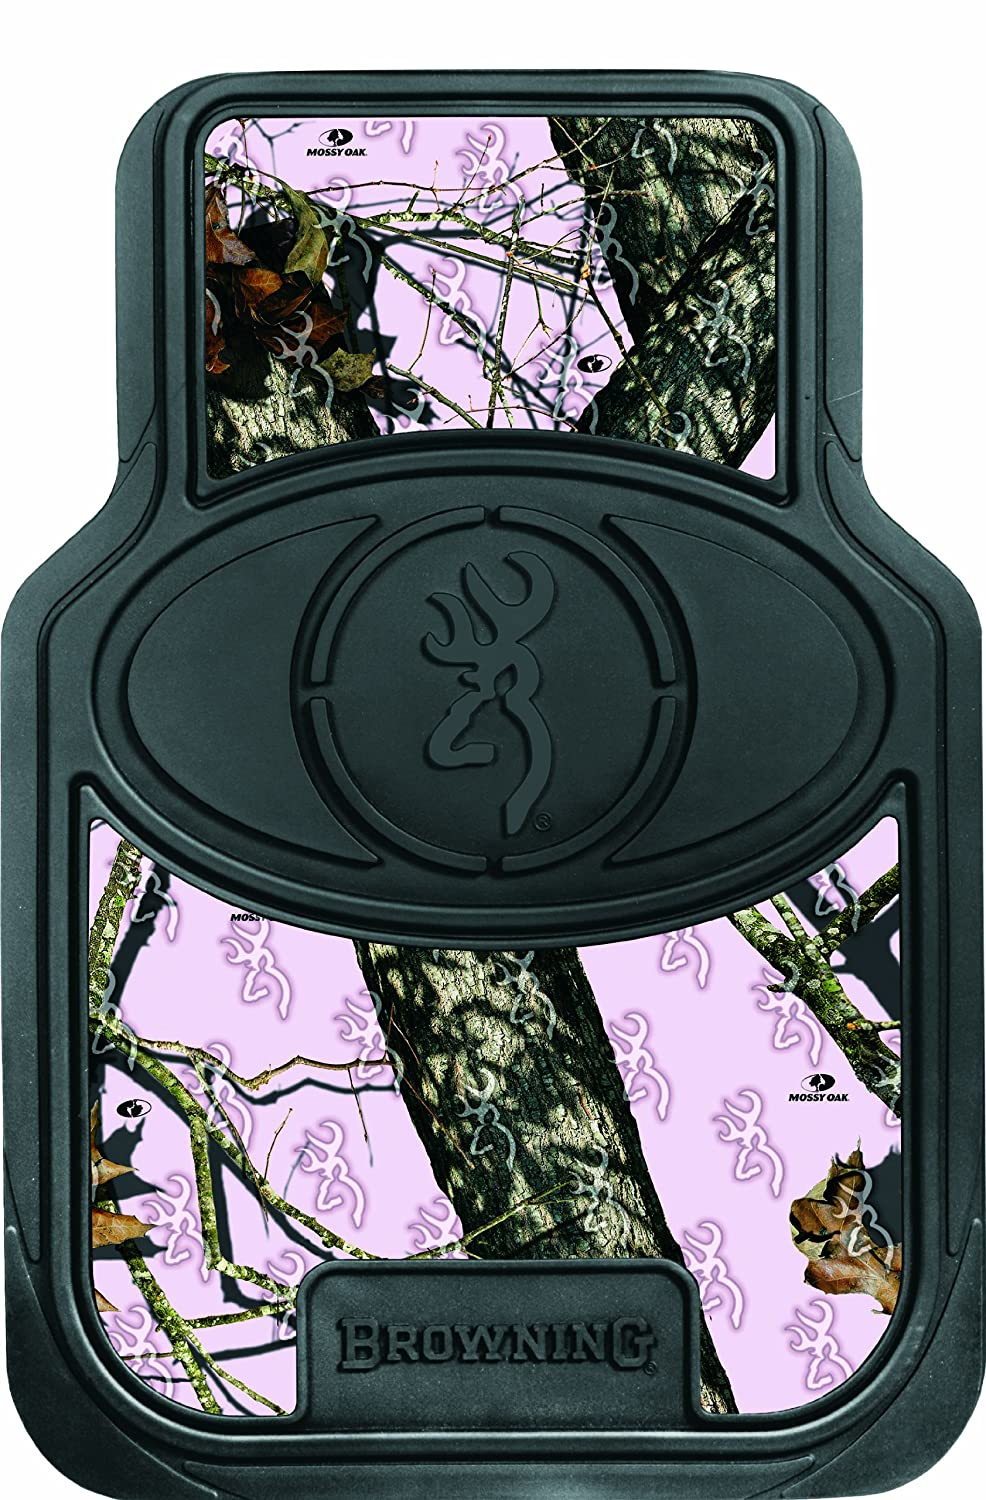 mats mat low browning mpn country neoprene oak mossy back seat lifestyle floor cover